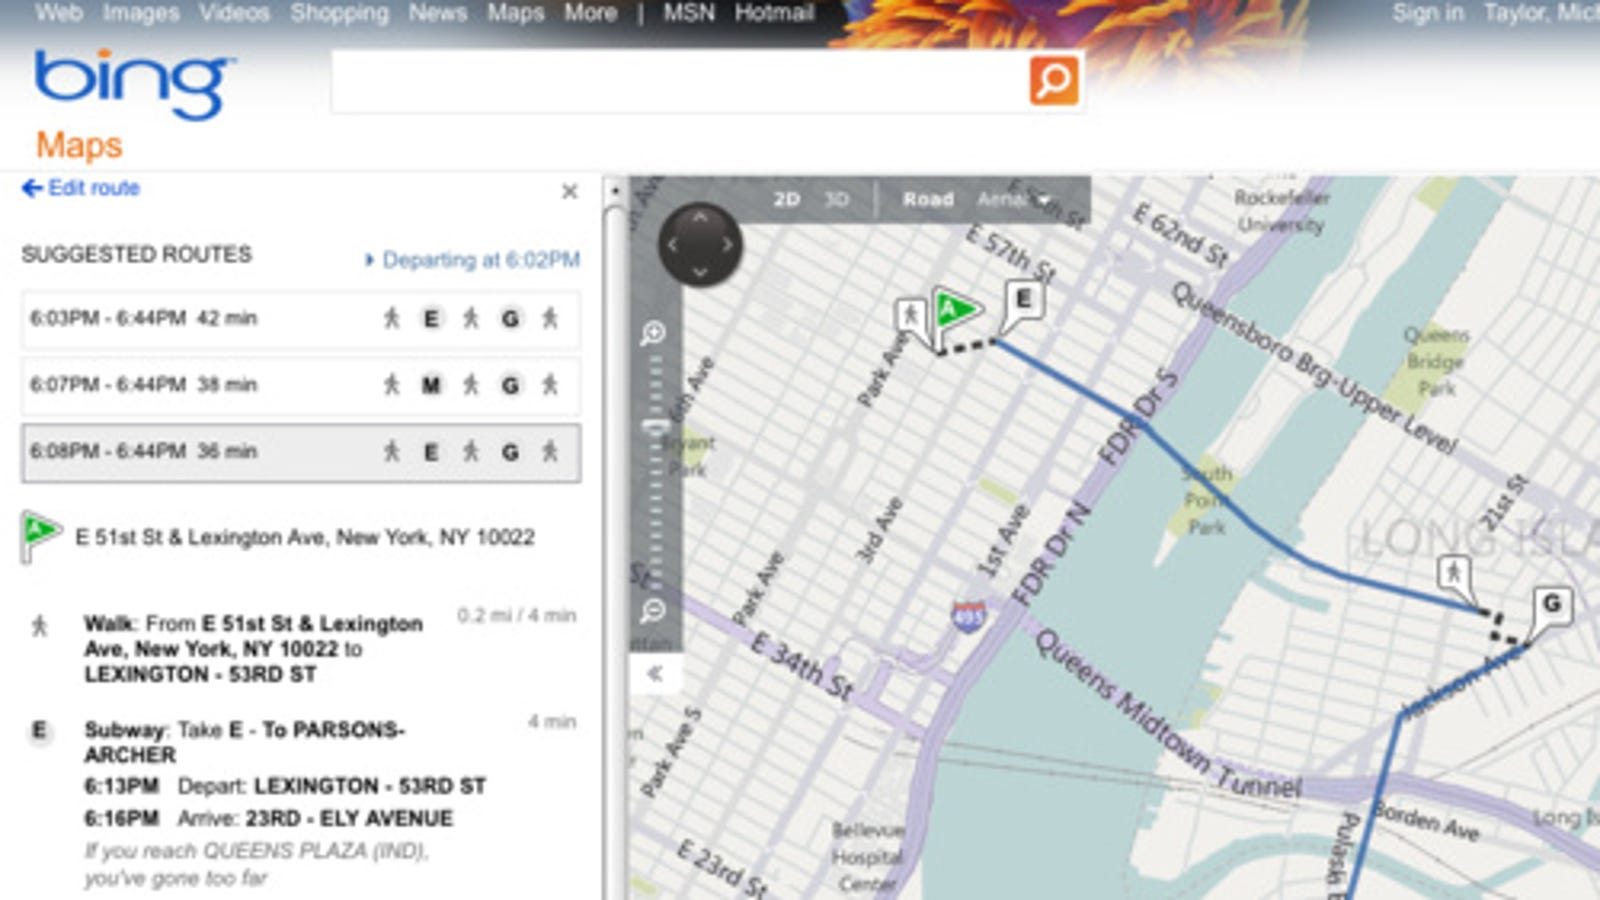 Bing Maps Adds Transit Directions for 11 Cities, More to Come